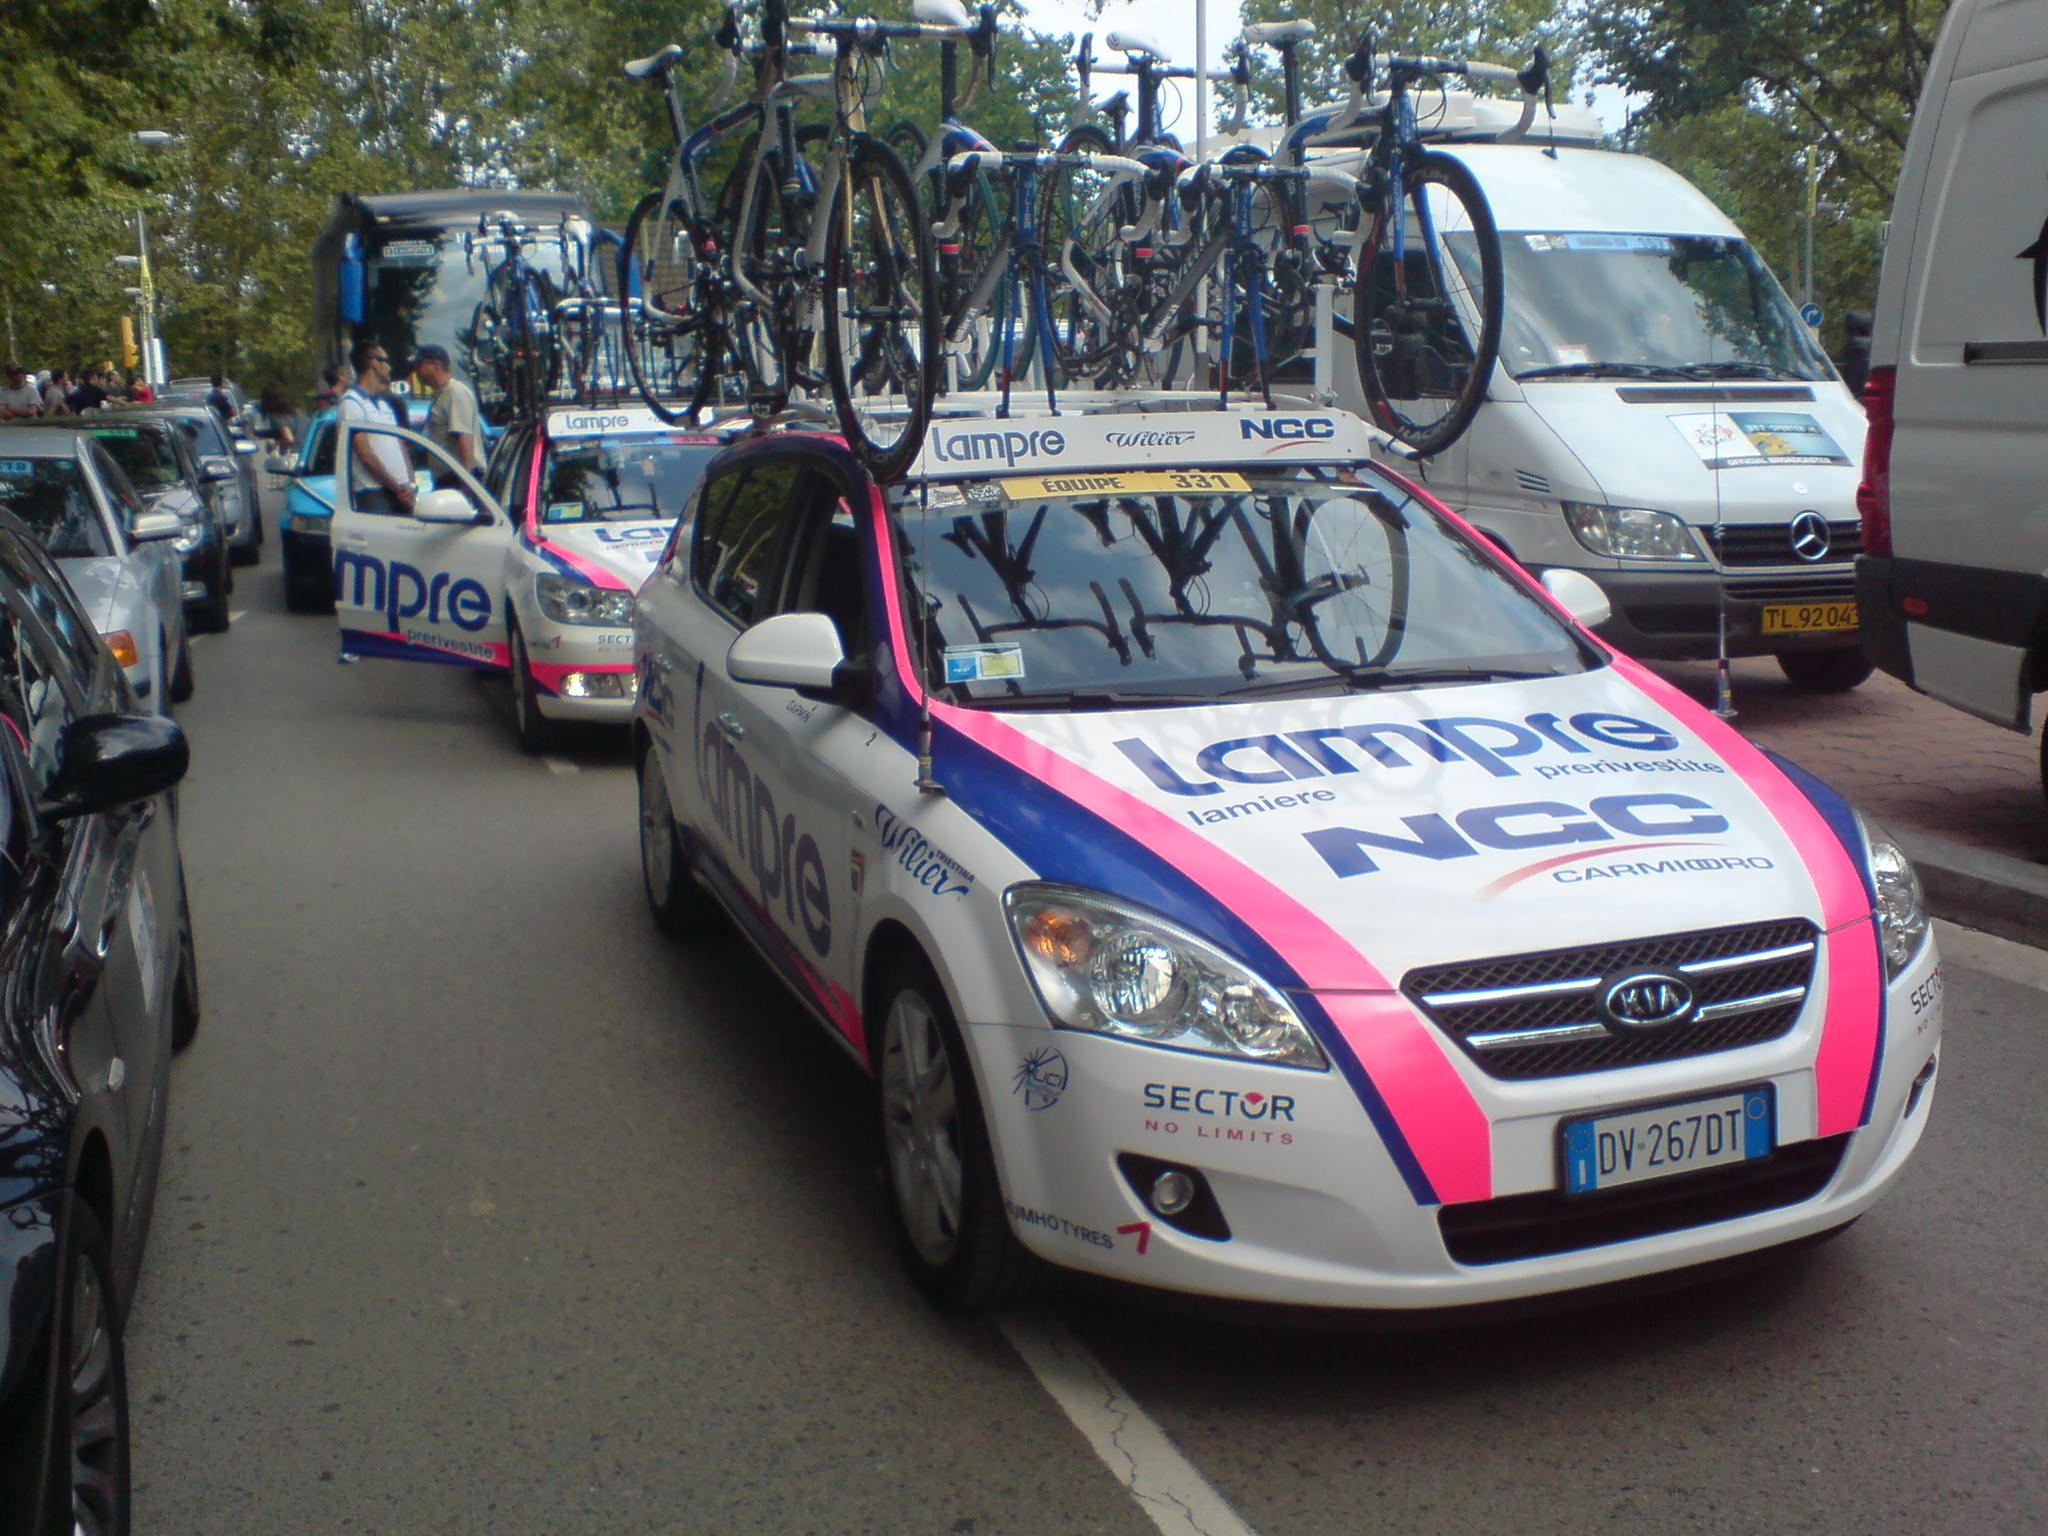 fil tour de france 2009 voiture de lampre girona jpg wikipedia den frie encyklop di. Black Bedroom Furniture Sets. Home Design Ideas